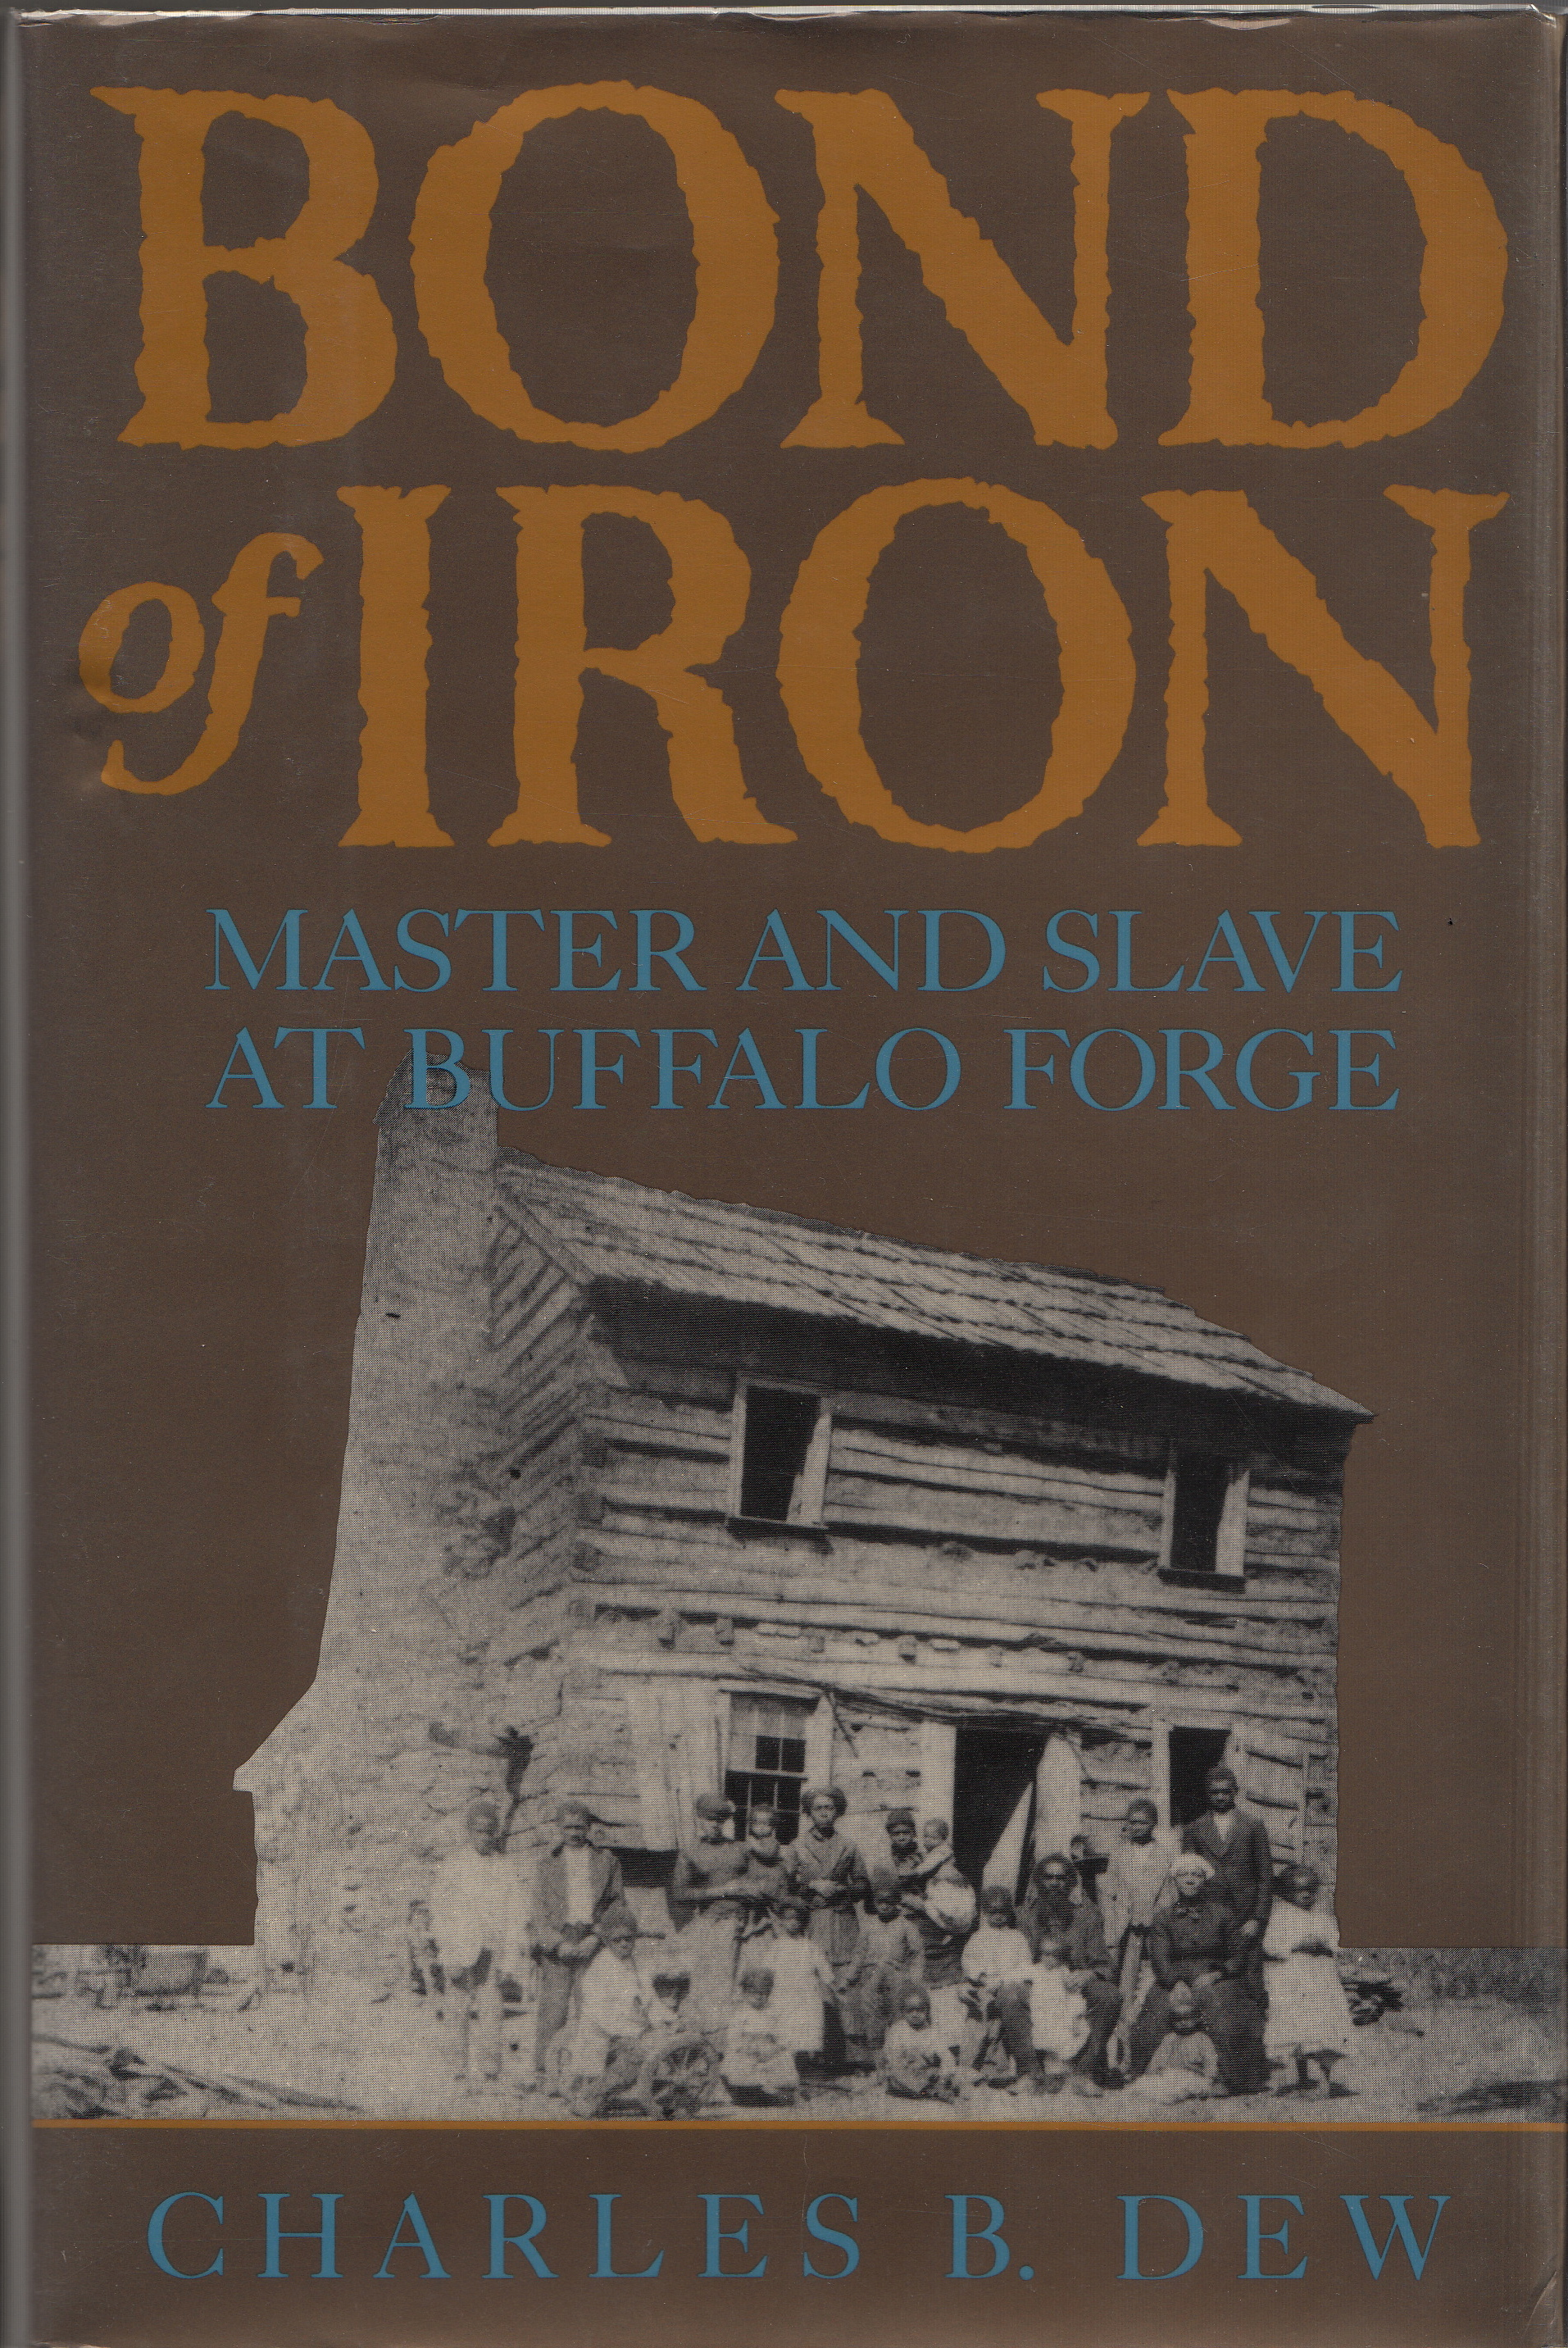 Cover of Bond of Iron: Master and Slave at Buffalo Forge by Charles B. Drew, 1994. (F234 .B89 D48 1994. Coles Fund 1998/1999. Image by Petrina Jackson)